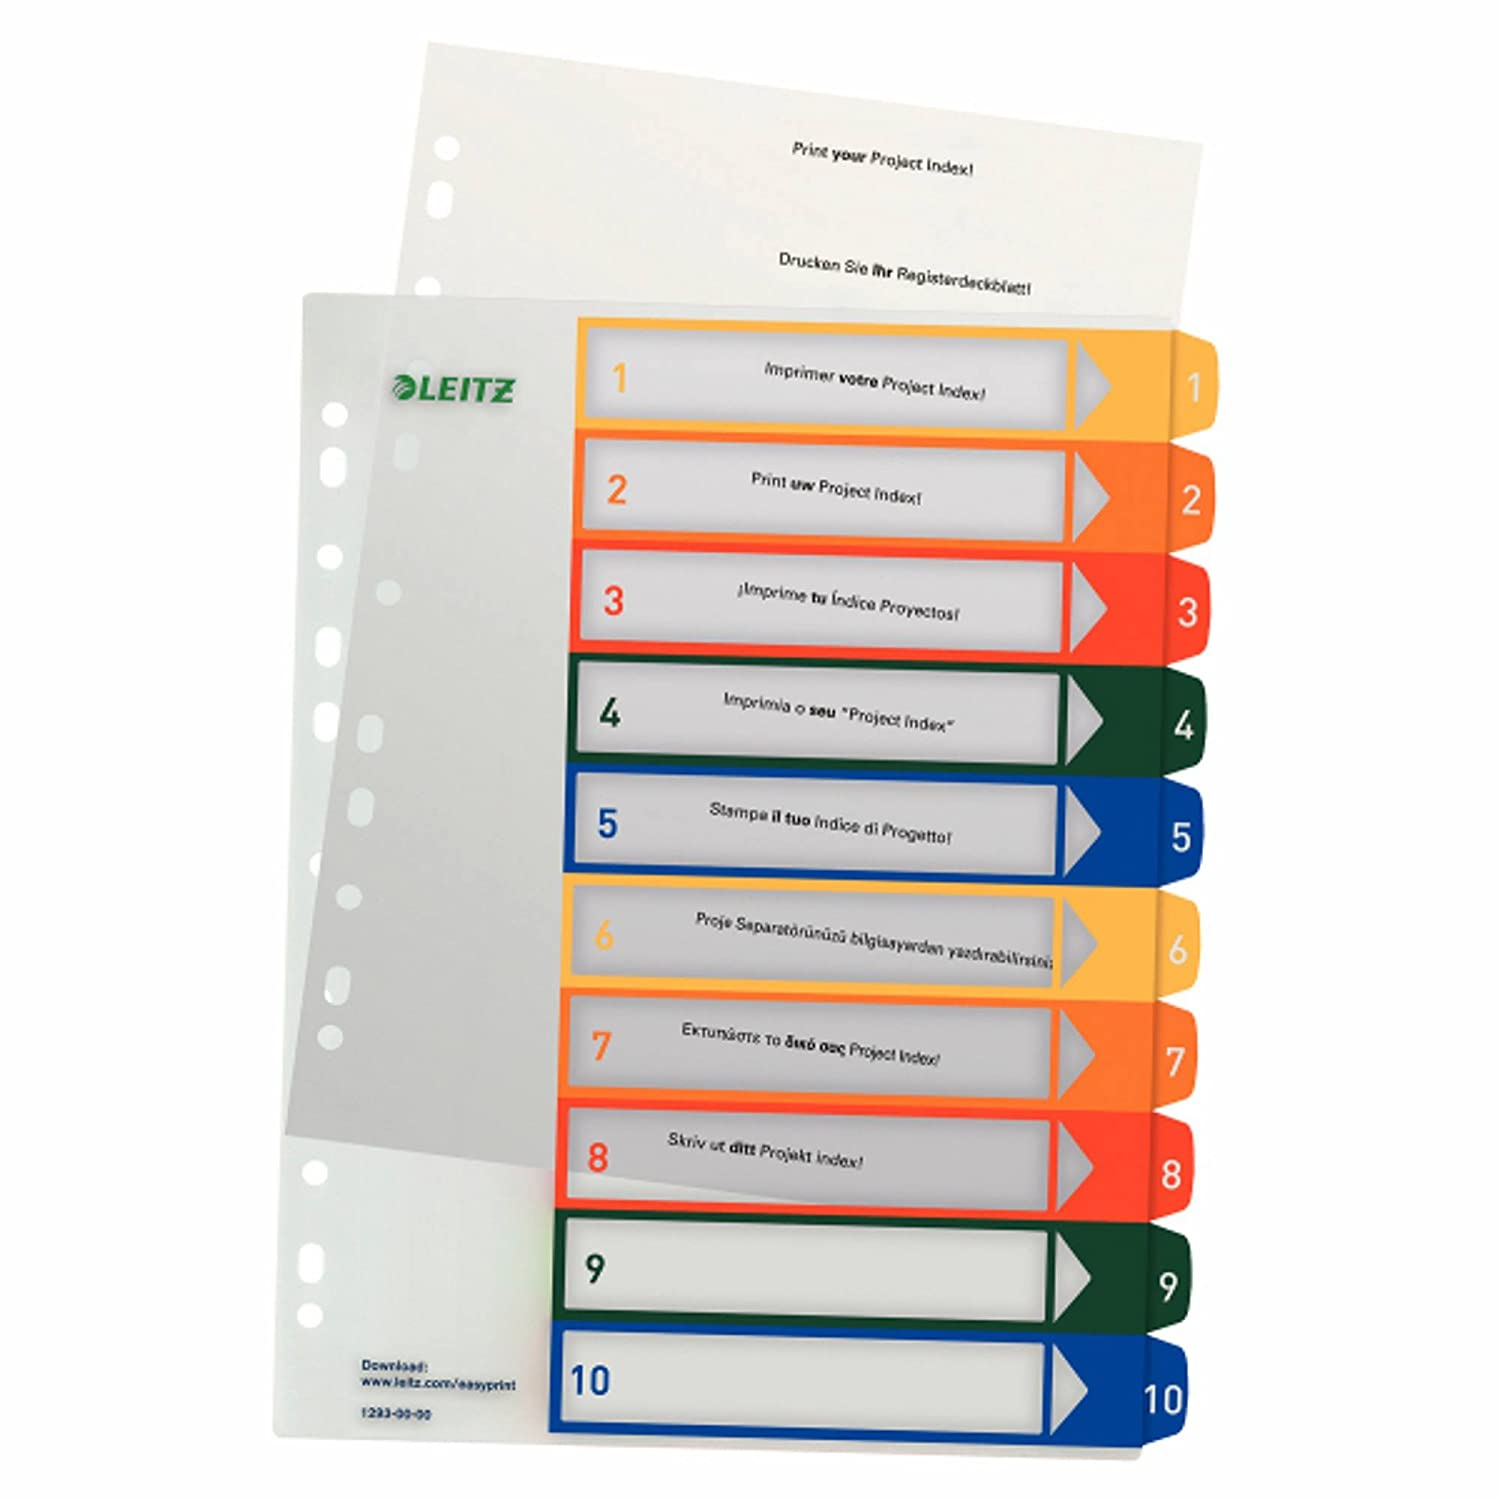 Leitz 12930000 PC de registro, beschriftbares registro, de A4, polipropileno, 1 – 10, multicolor, color multicolor/transparente 1-10 7a9e43